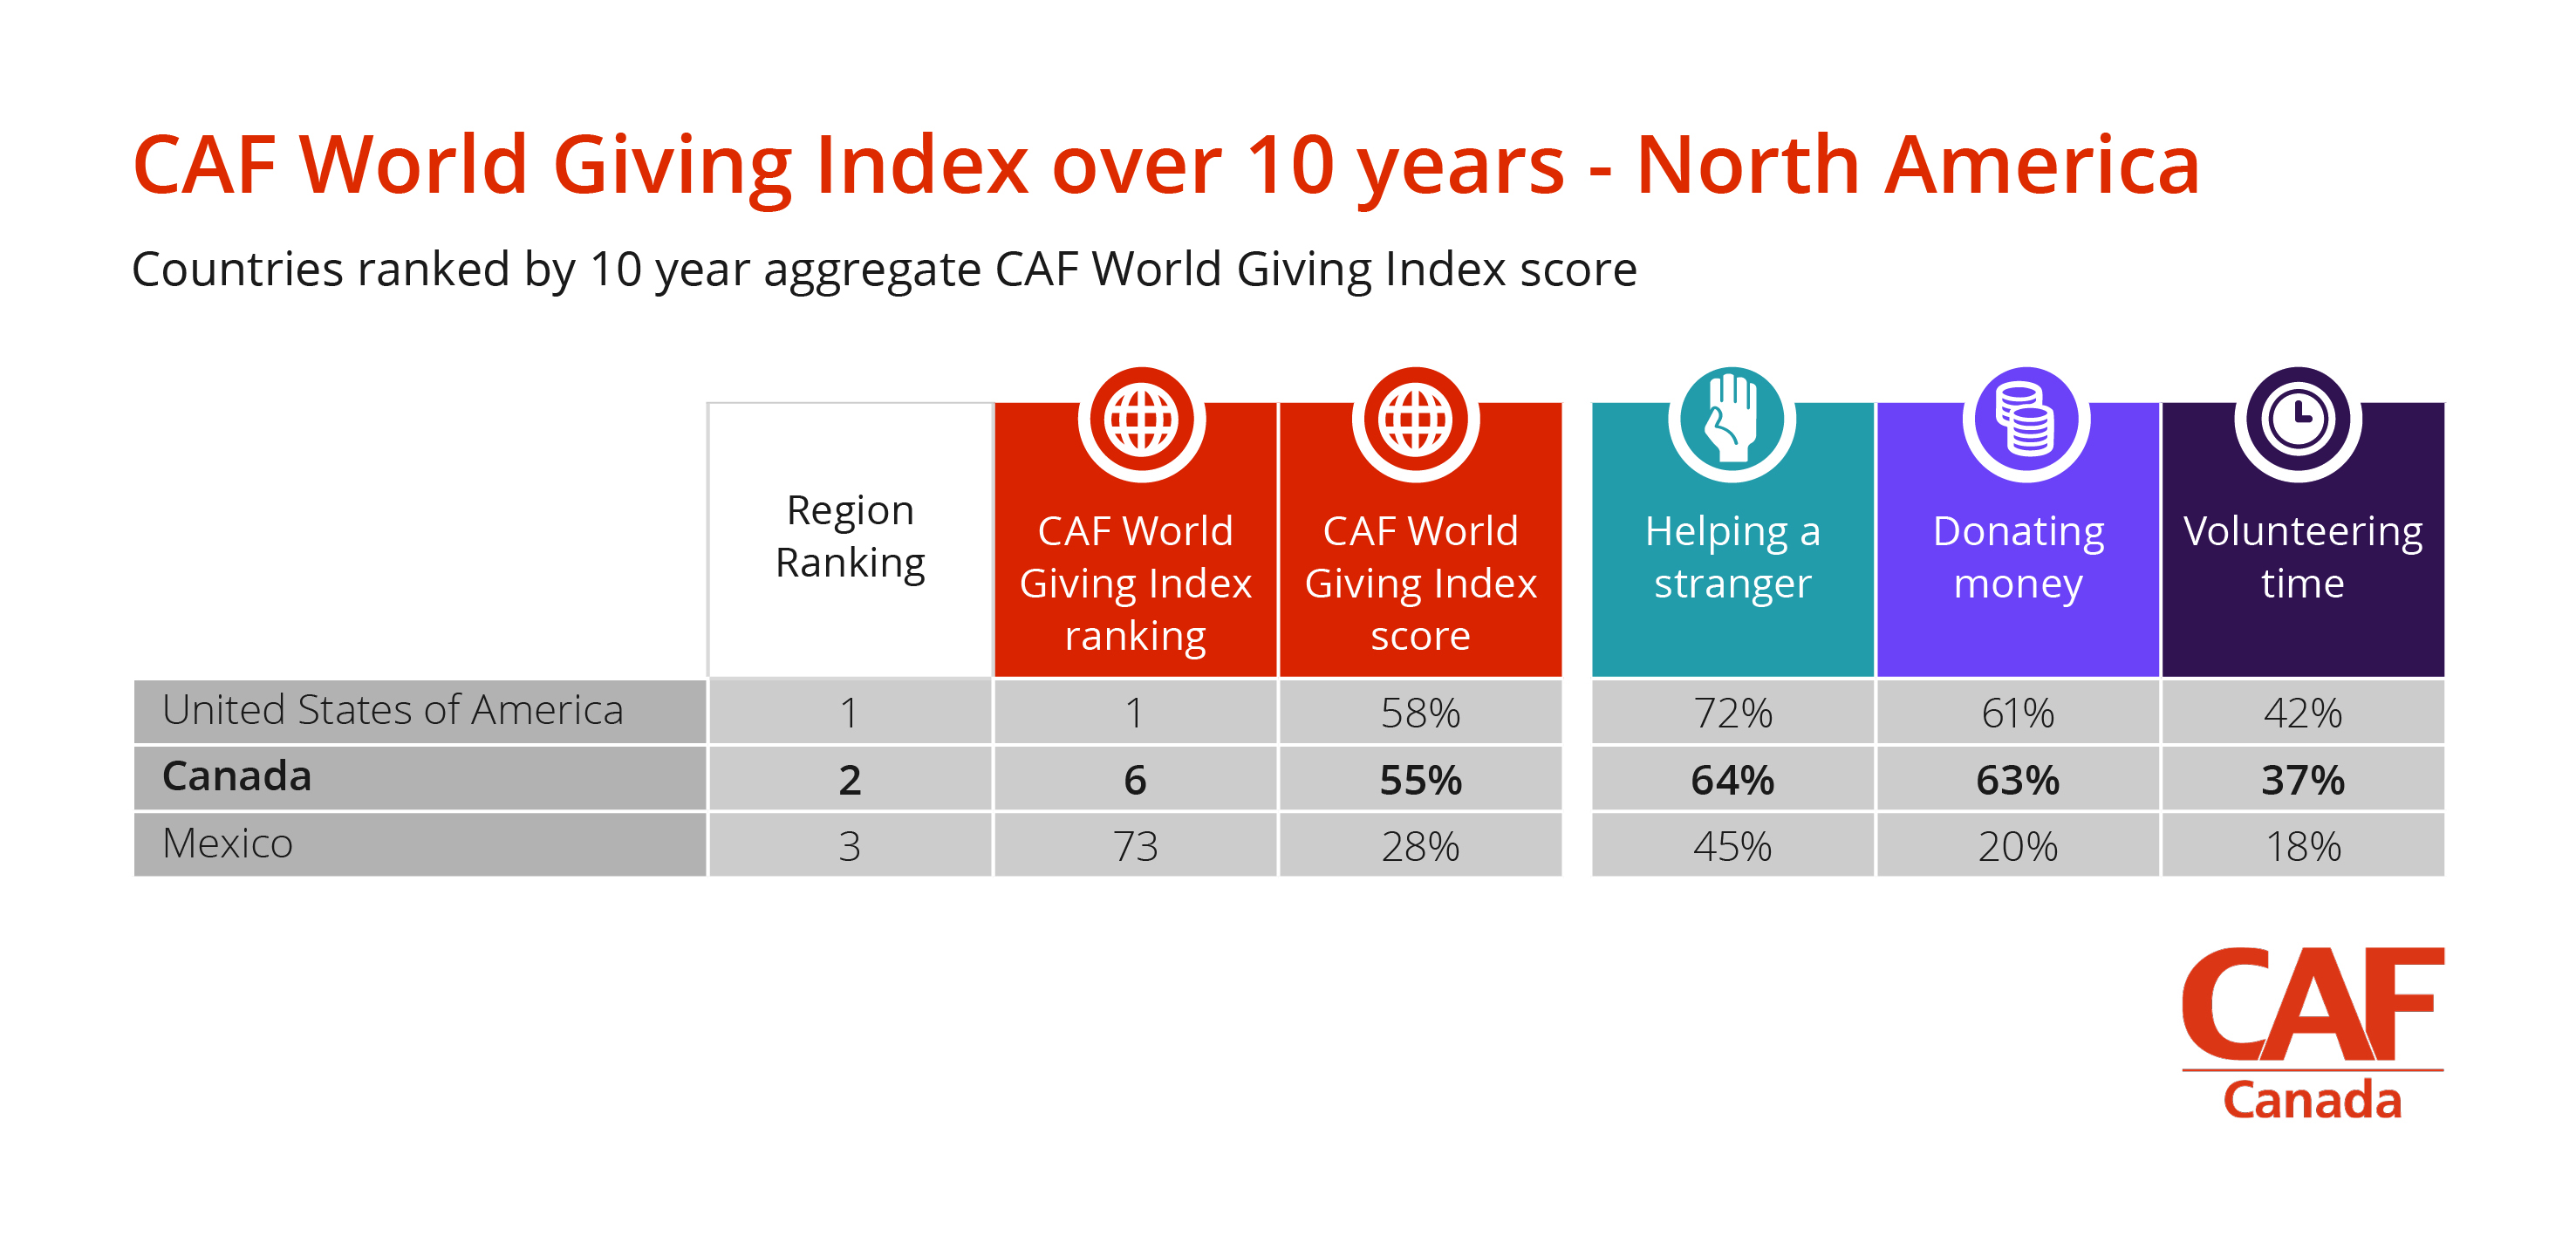 Table_CAF World Giving Index over 10 years_North America (Canada)